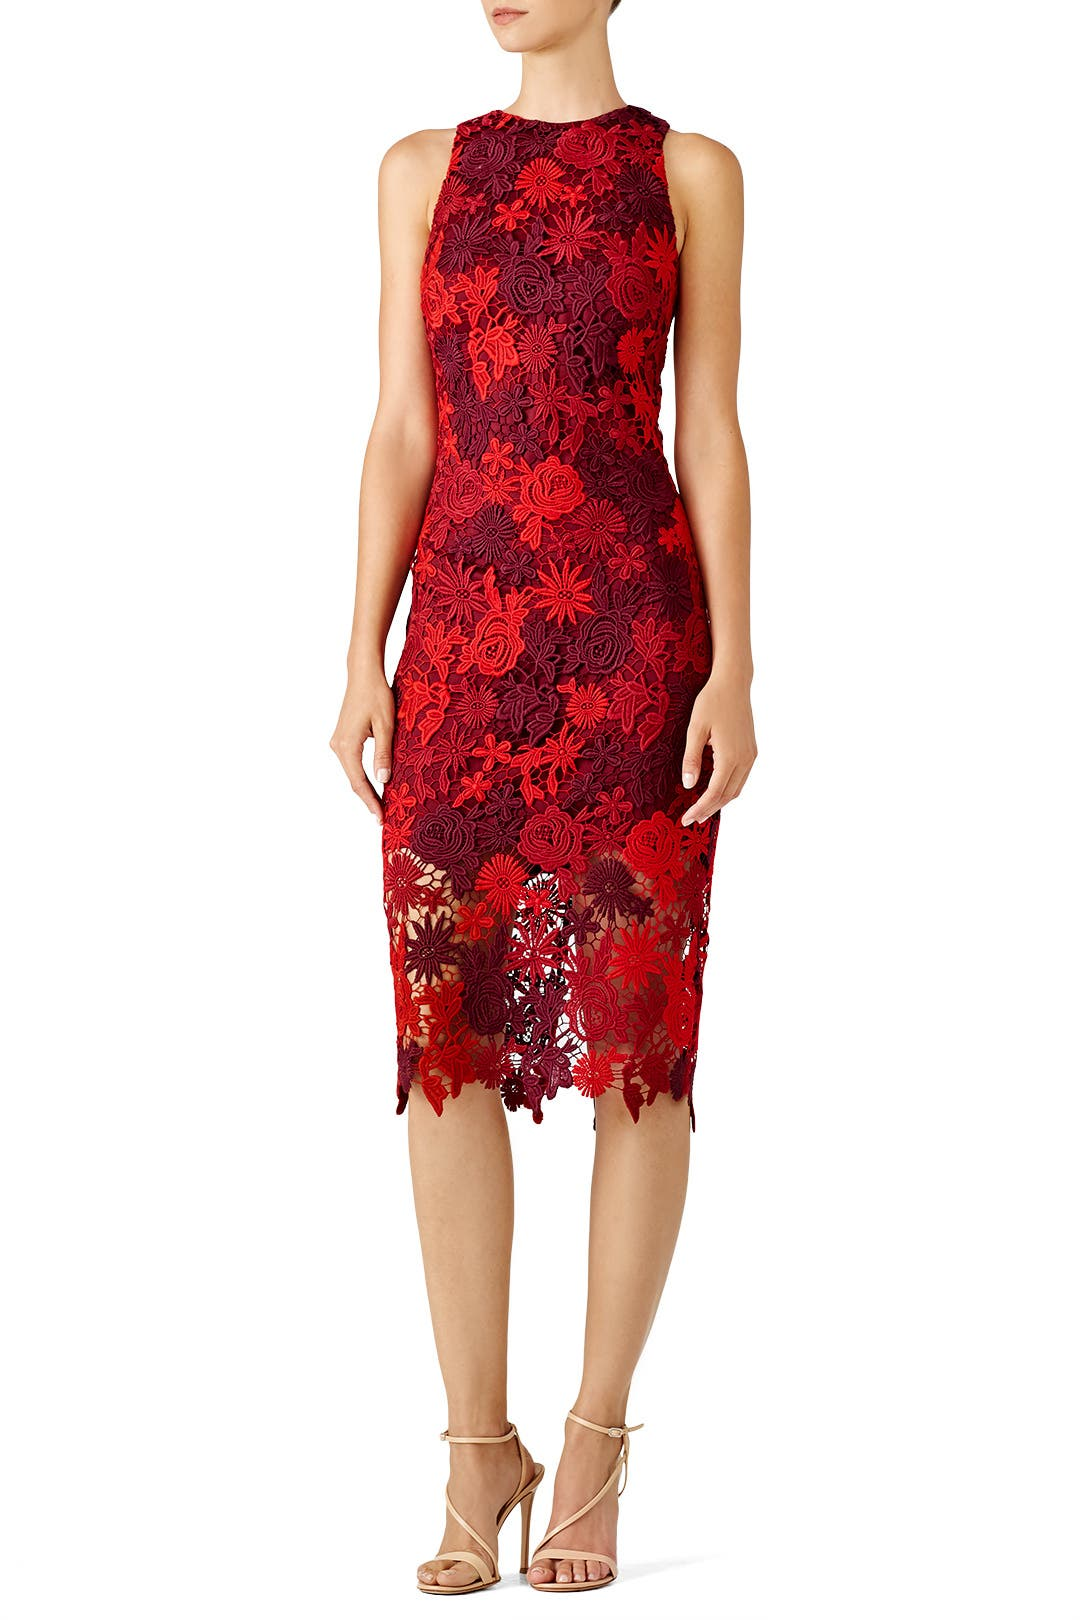 Red Floral Lace Sheath By Alexia Admor For 30 45